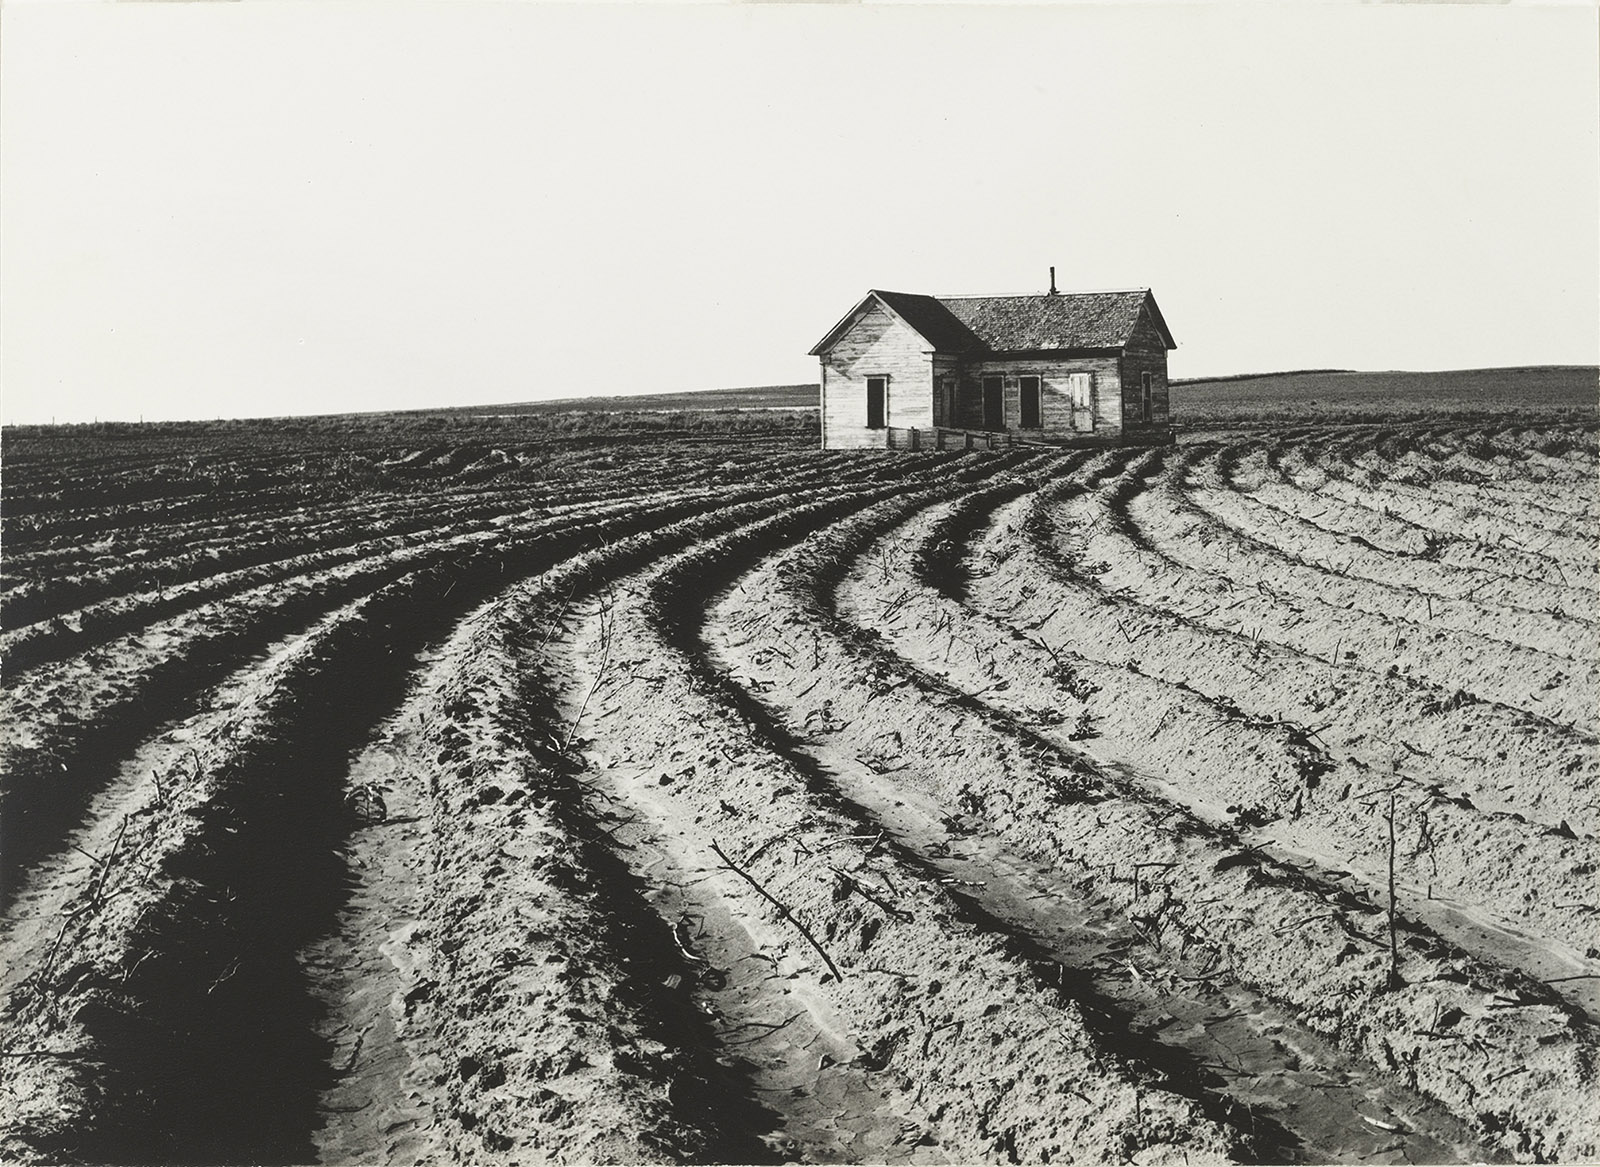 Tractored Out, Childress County, Texas, 1938; photograph by Dorothea Lange